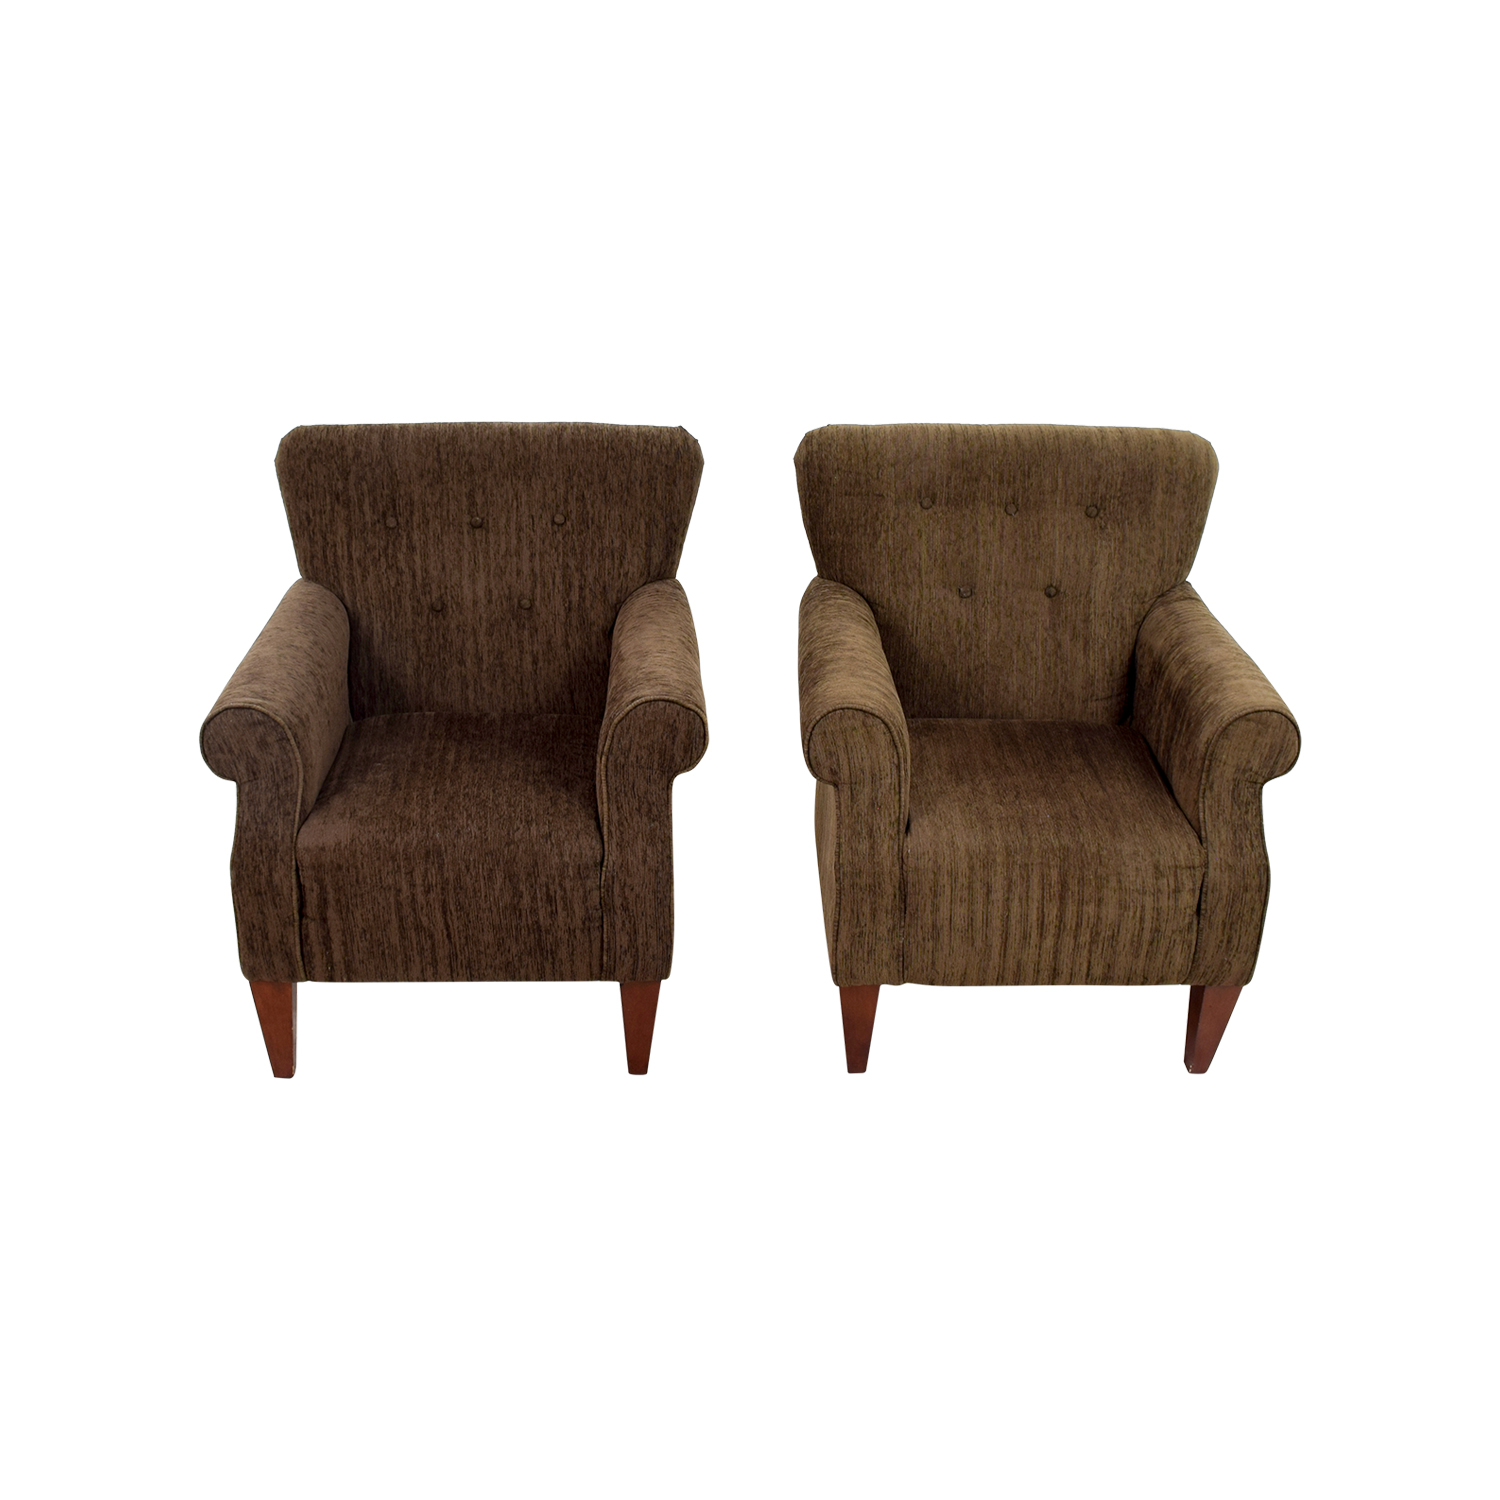 86 off emerald home furnishings emerald home for Upholstered accent chairs cheap